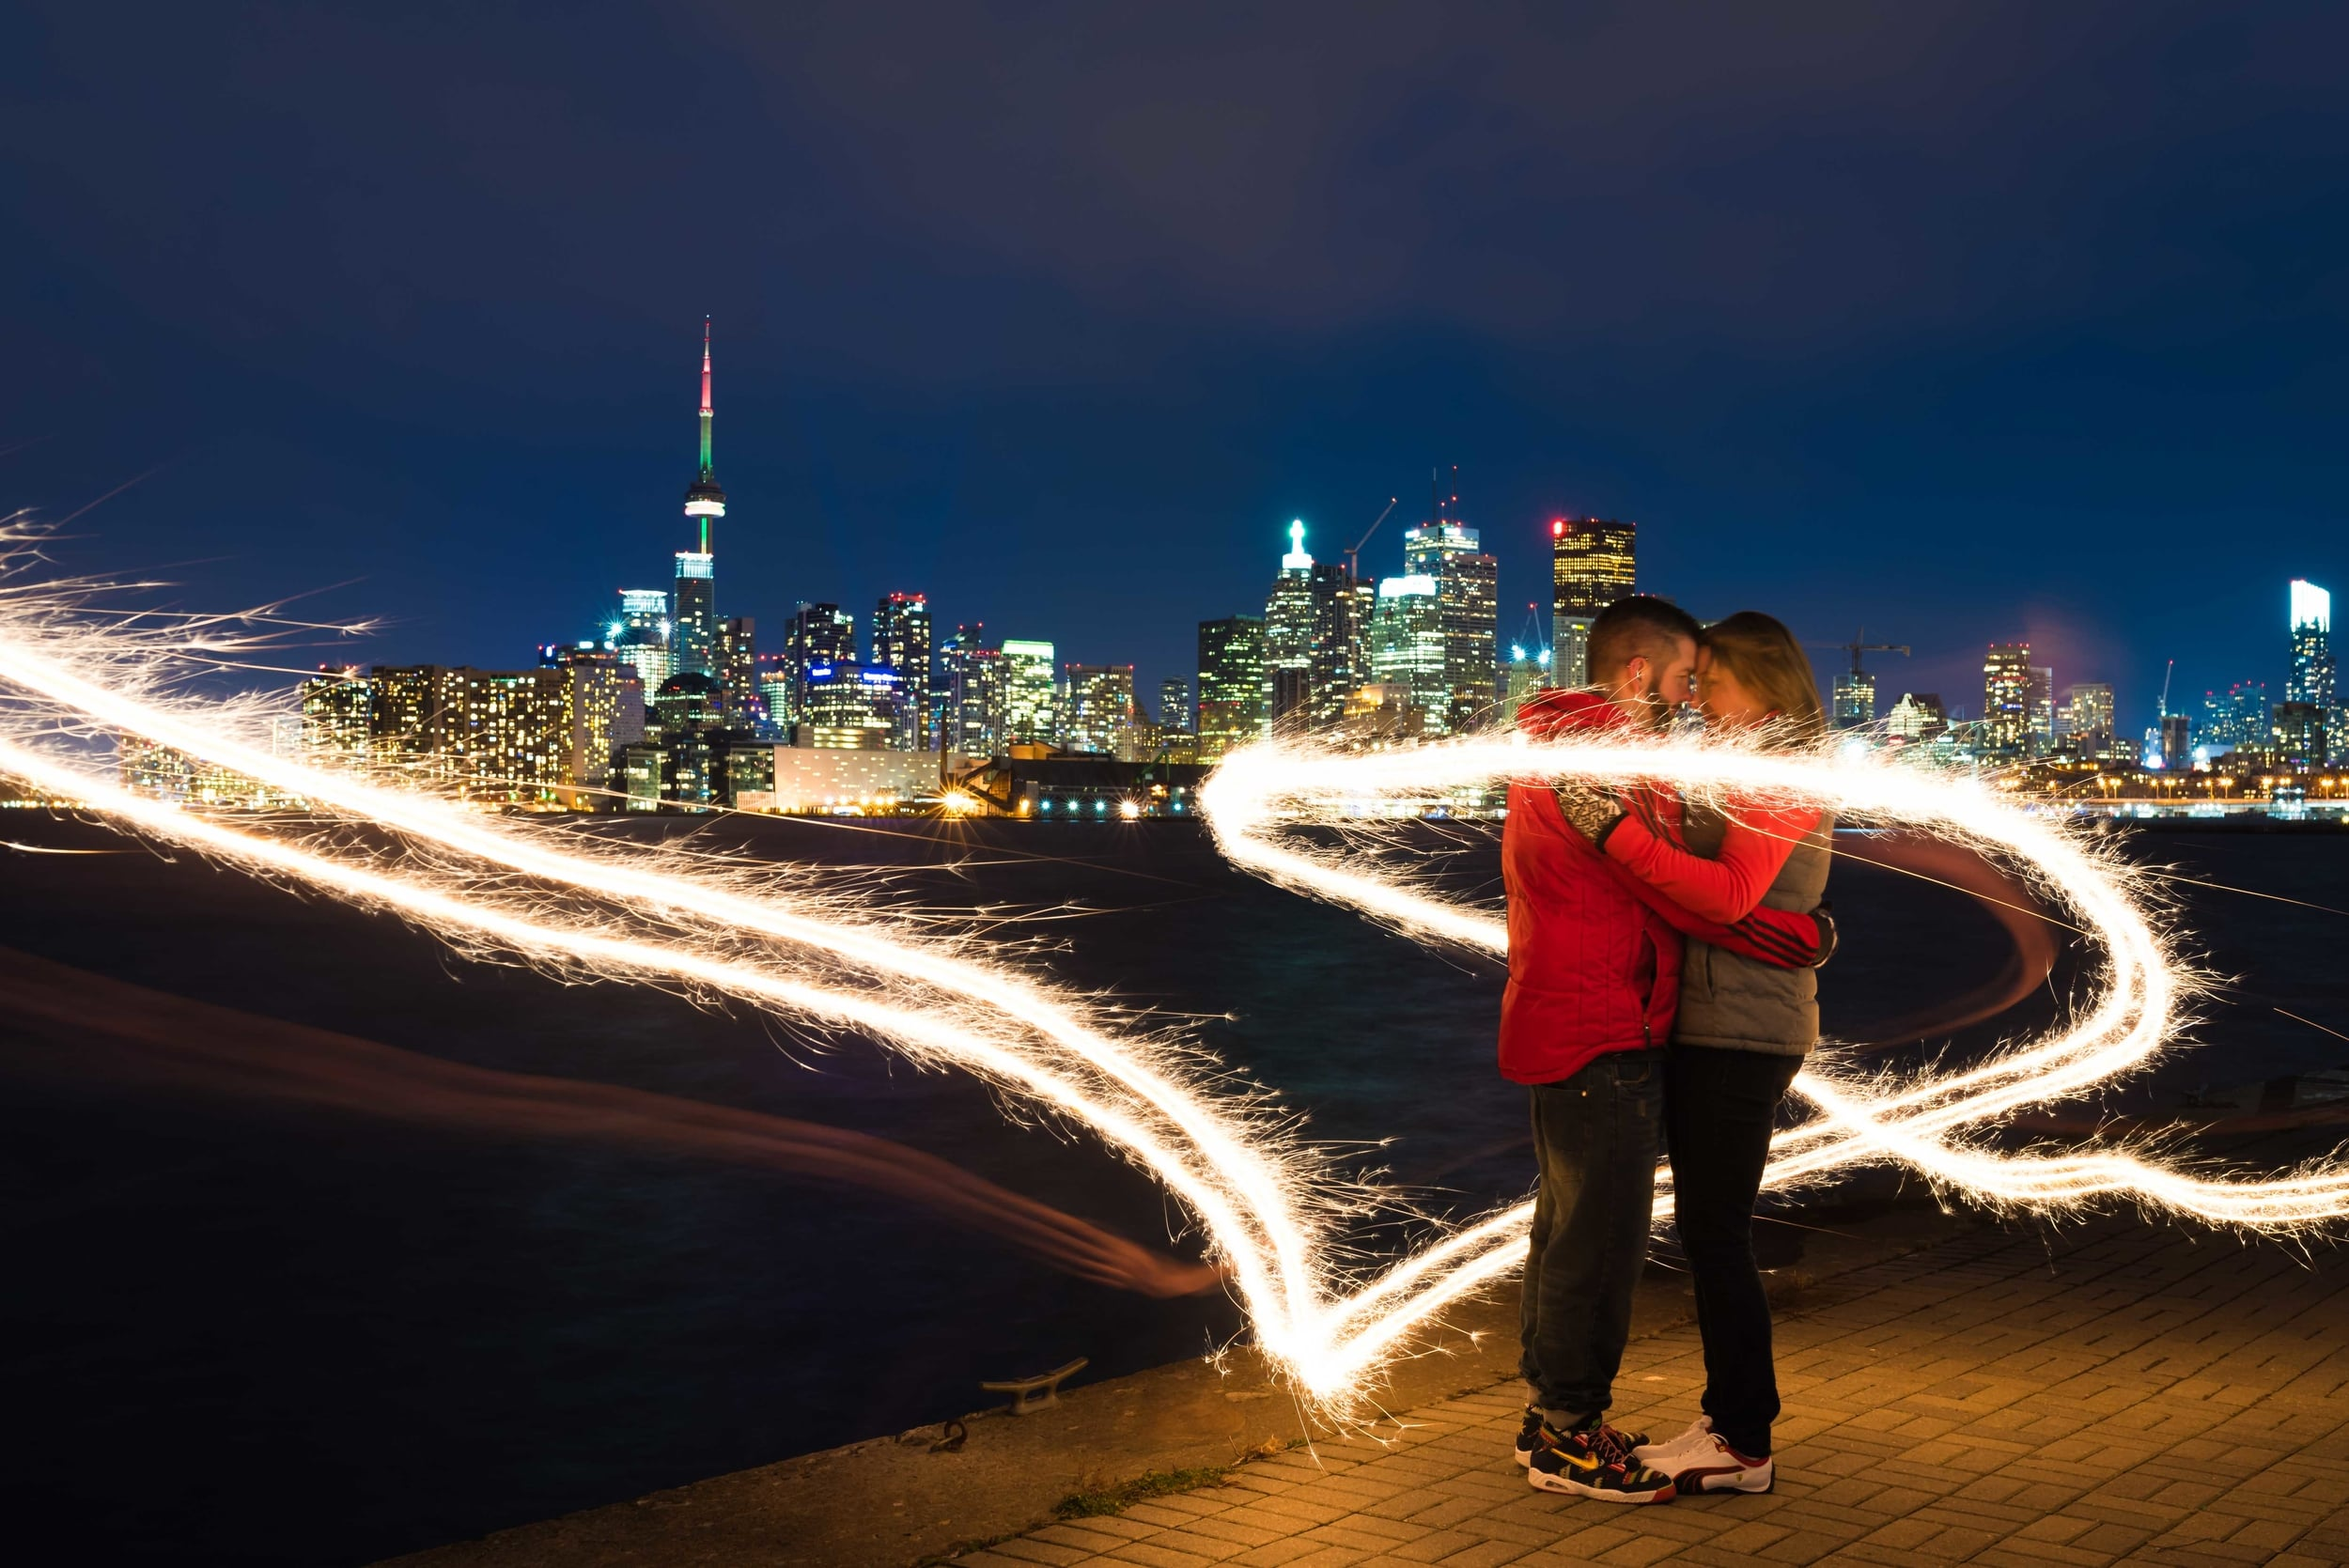 Two very still people, 10 sec exposure & sparklers = THIS!